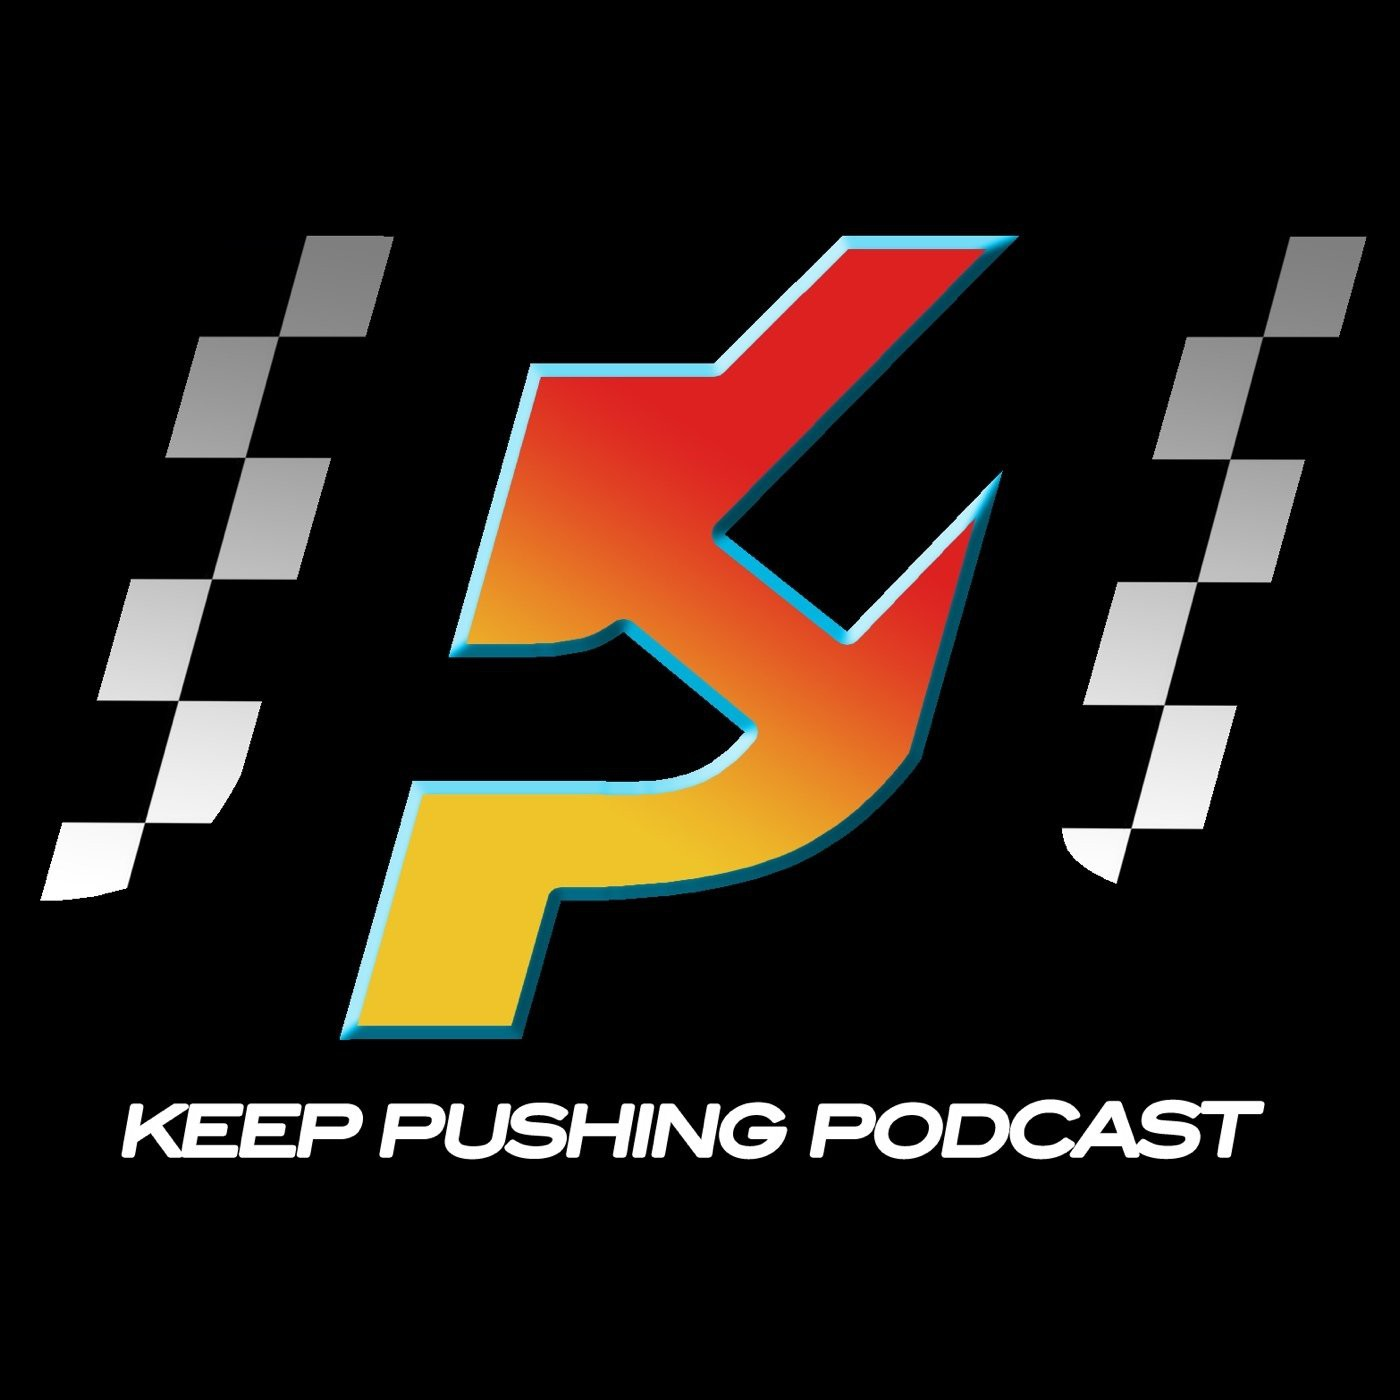 Keep Pushing - Episodio #157: GP de Malasia 2015